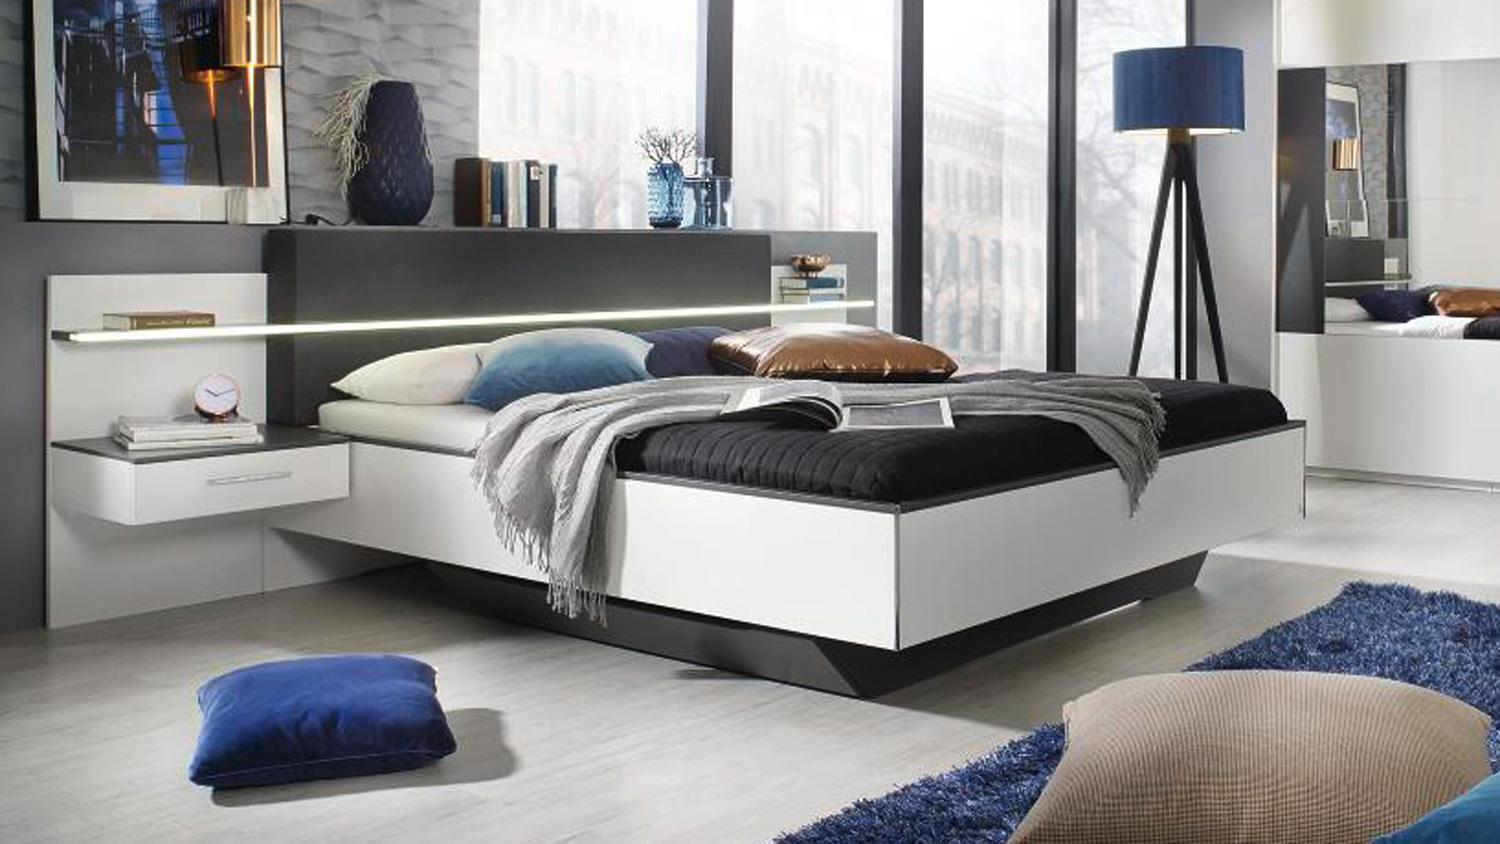 bettanlage elissa bett nachttisch schlafzimmer wei graphit led 180. Black Bedroom Furniture Sets. Home Design Ideas